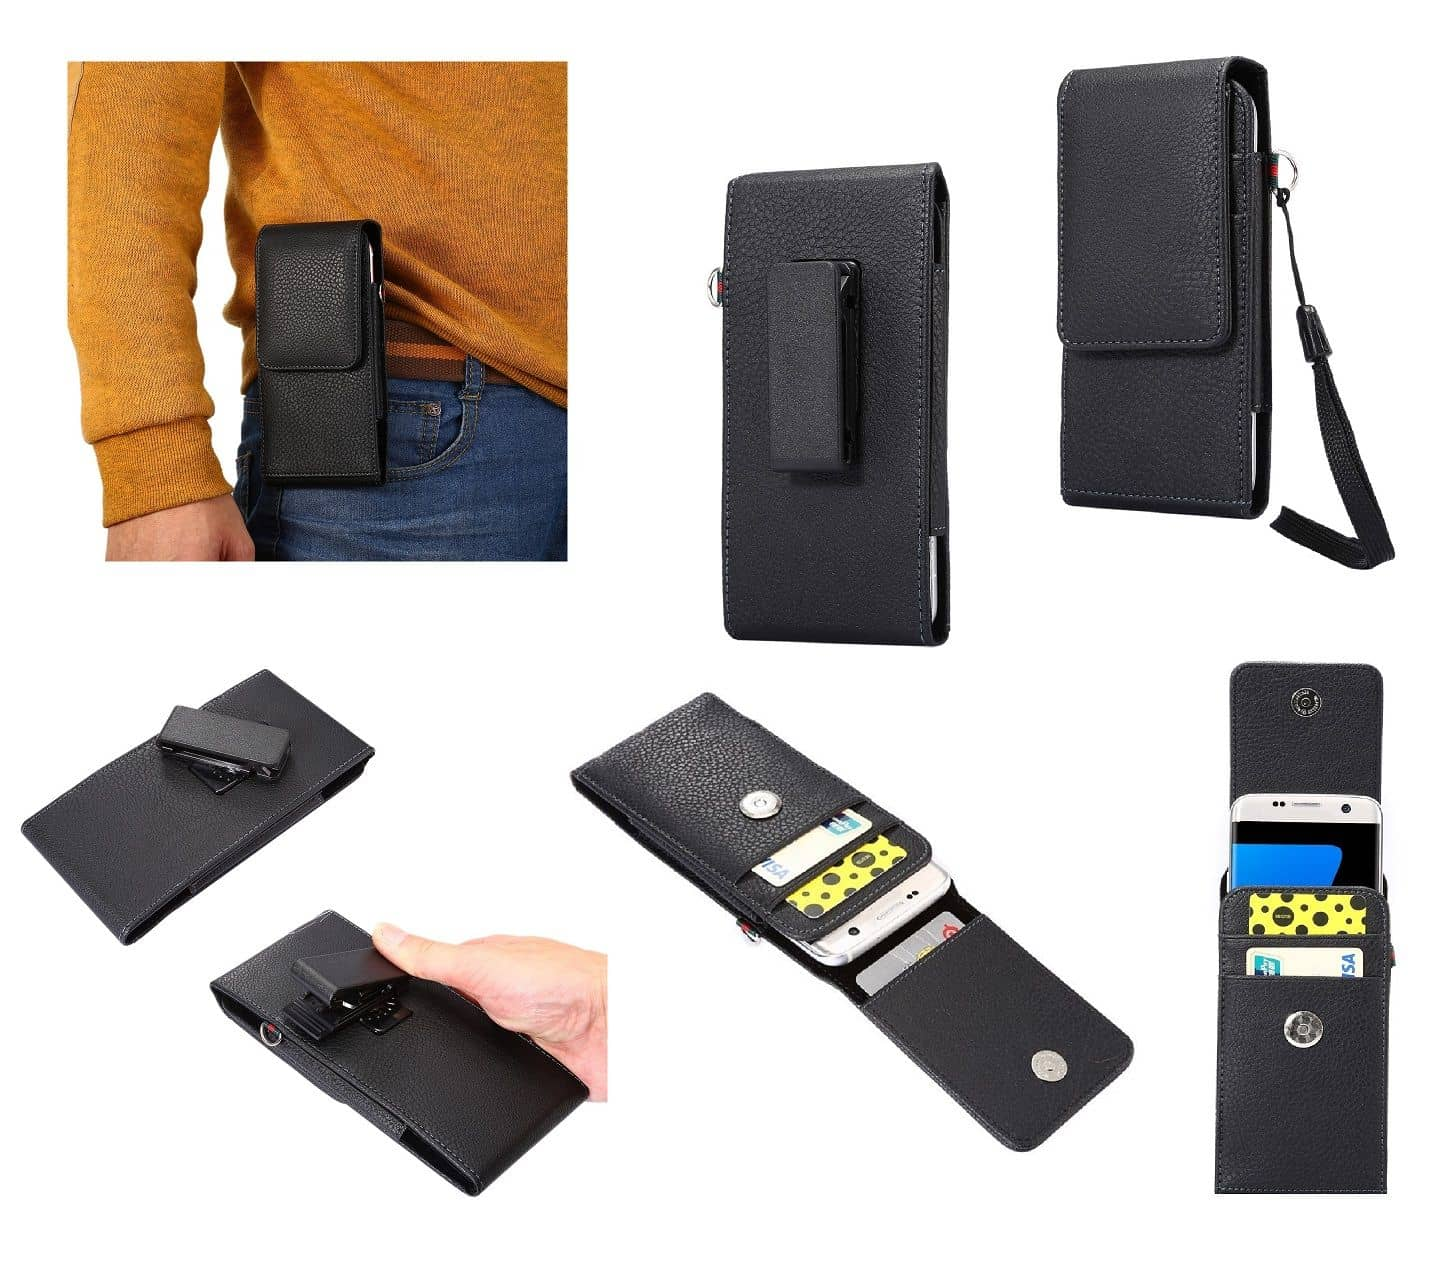 Magnetic leather Holster Card Holder Case belt Clip Rotary 360 for vivo S1 Pro (2020) - Black